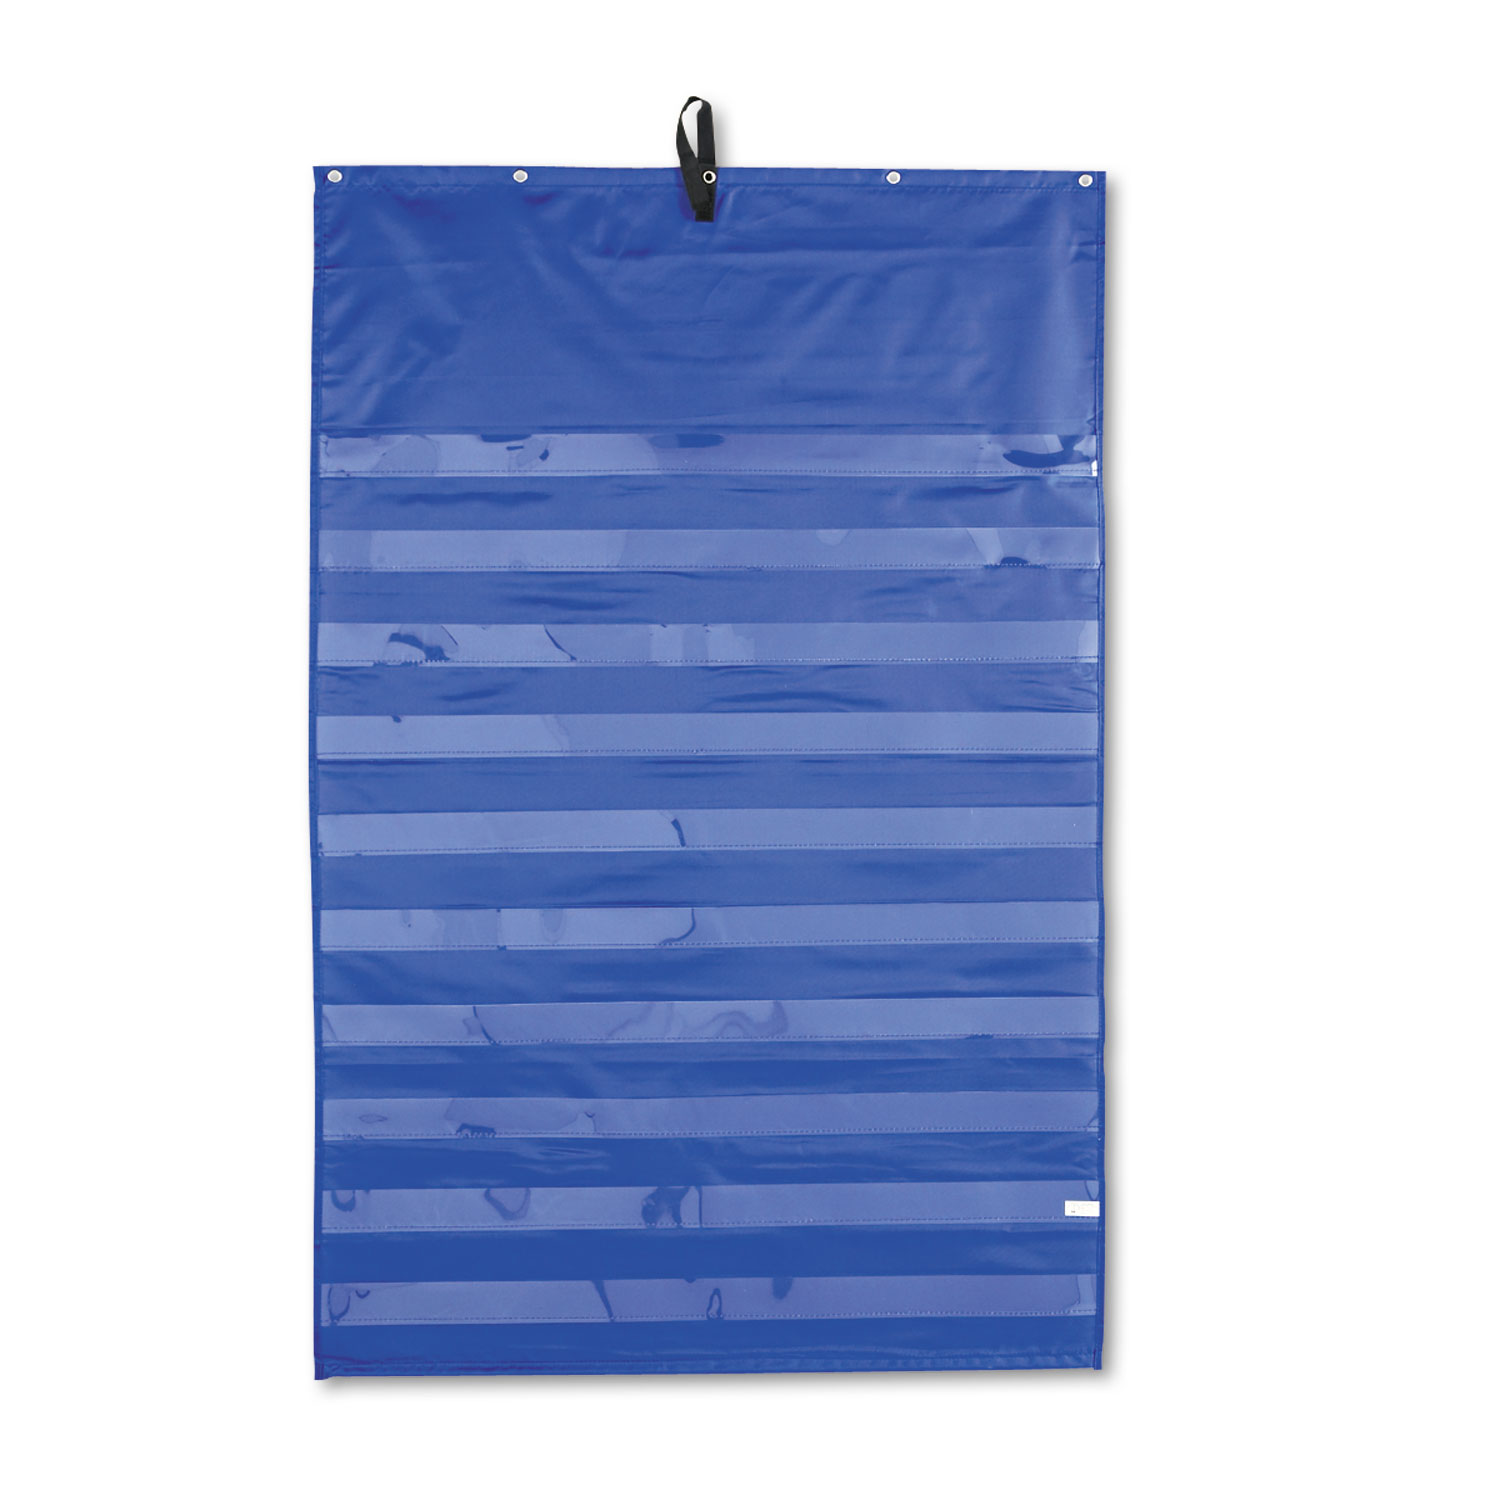 Essential Pocket Chart, Ten Clear and One Storage Pocket, Grommets, Blue, 31 x 42